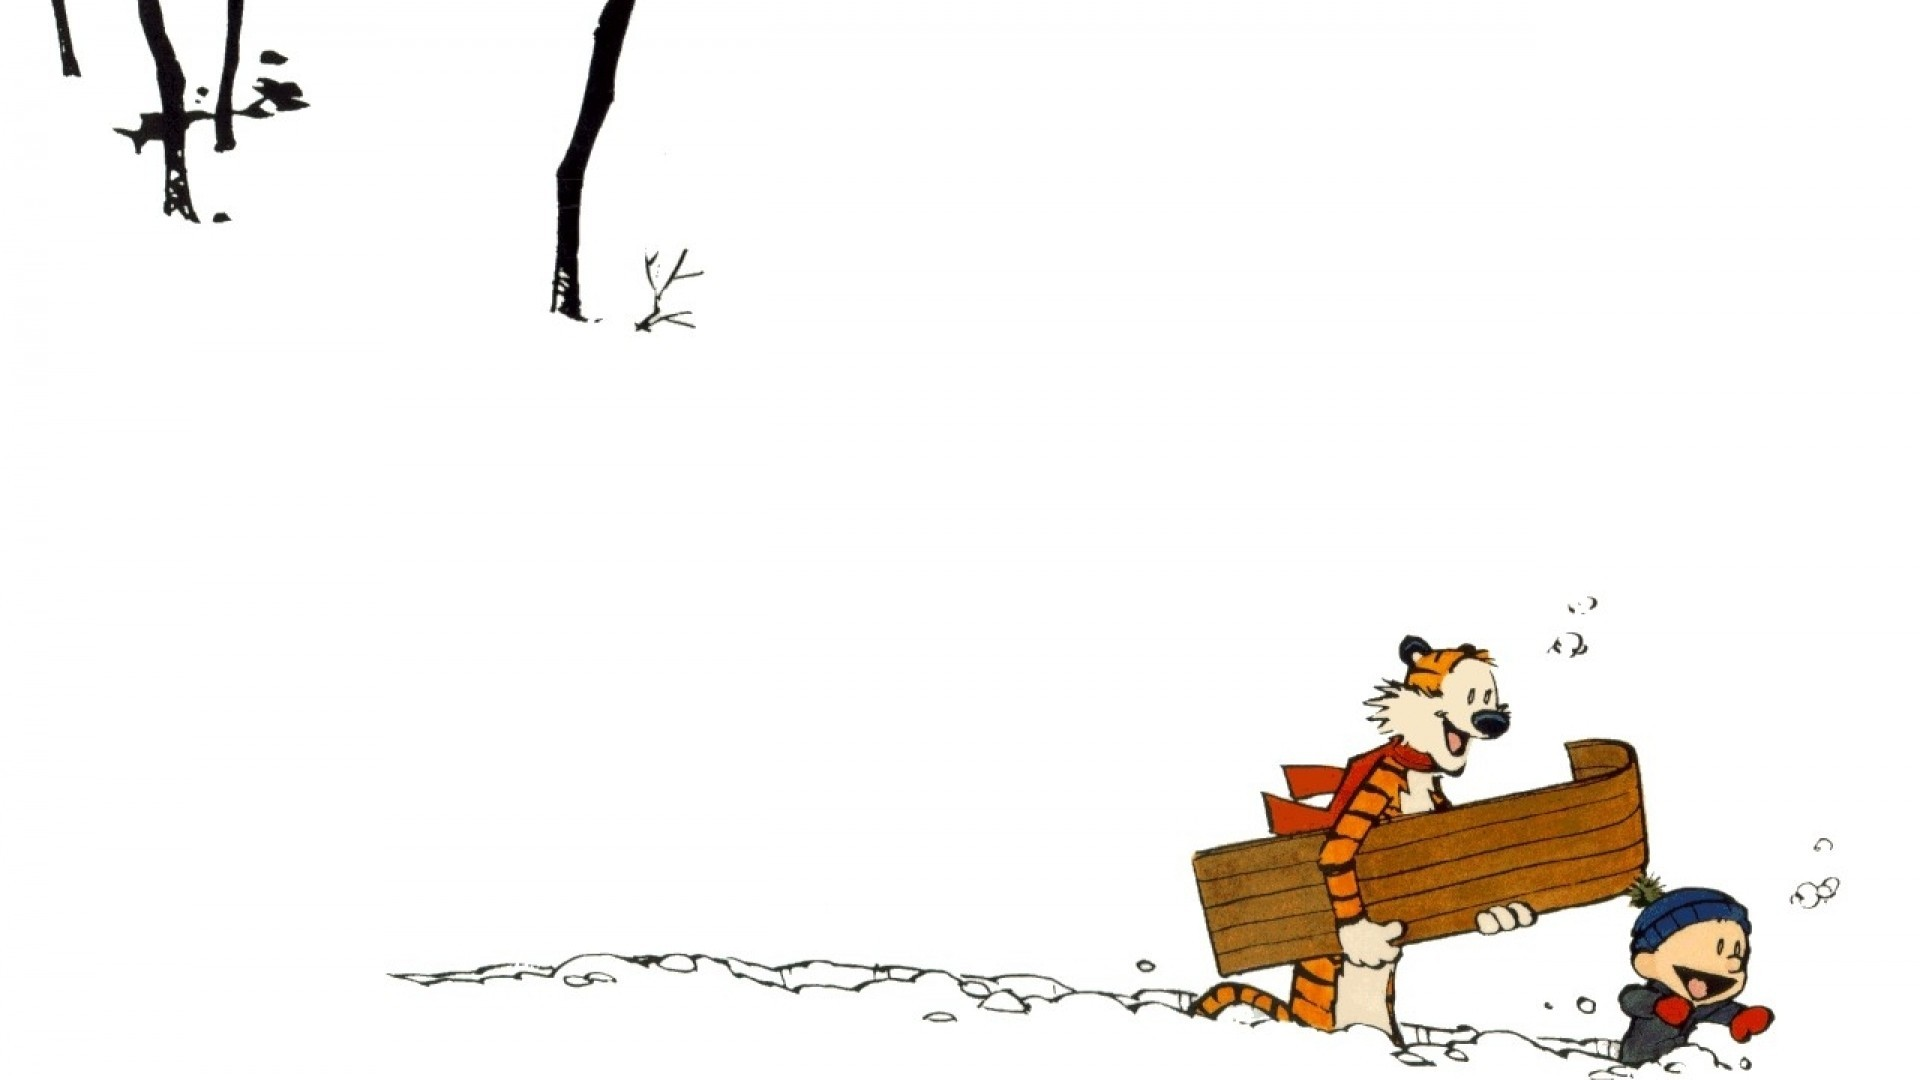 1920x1080 Calvin Hobbes Computer Wallpapers, Desktop Backgrounds 1920×1080 Calvin And Hobbes  Wallpapers 1920×